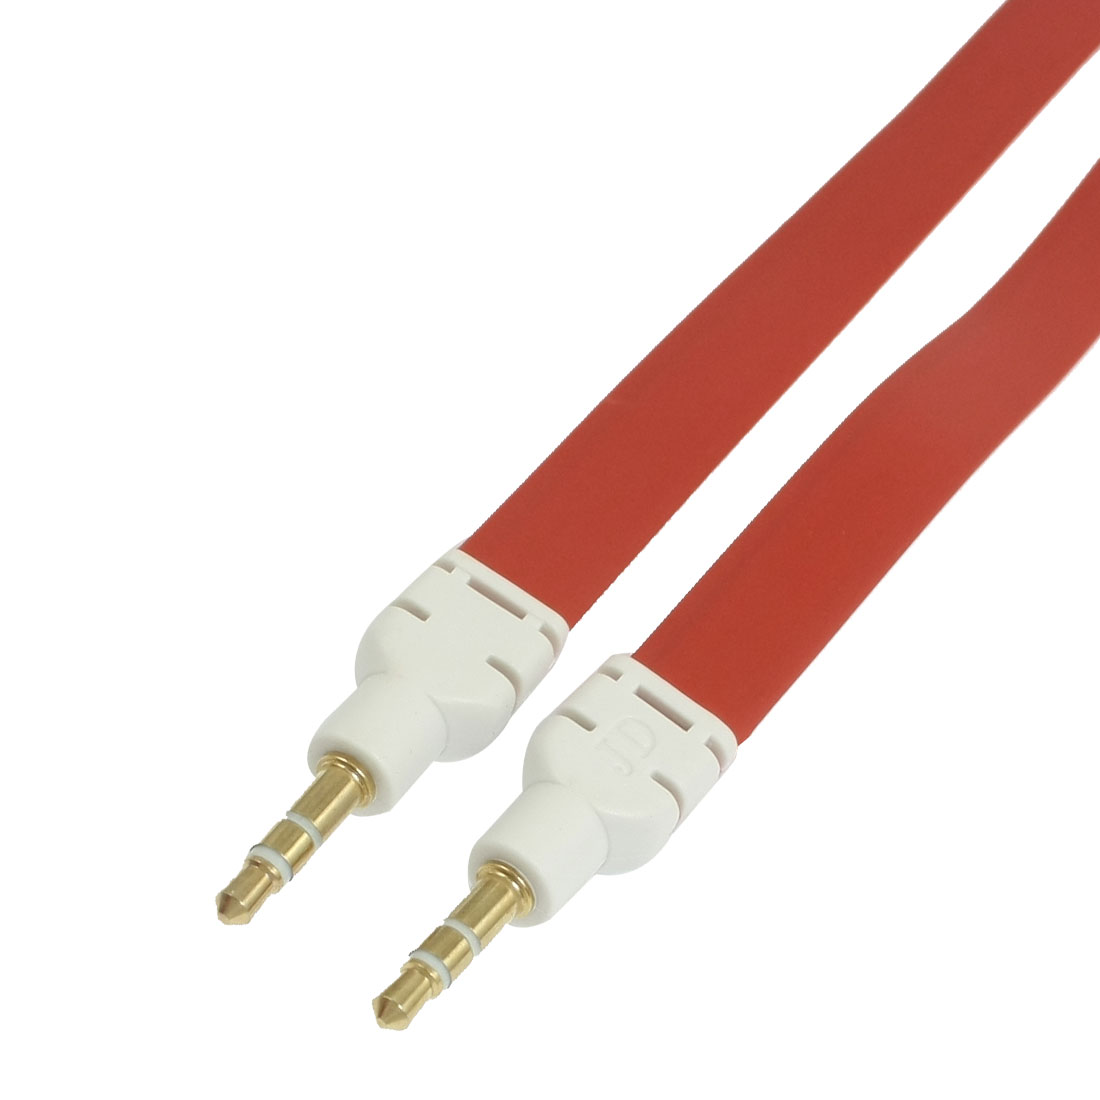 3.3Ft Long 3.5mm Male to Male Plug Flat Audio Cable Red for MP3 MP4 Player